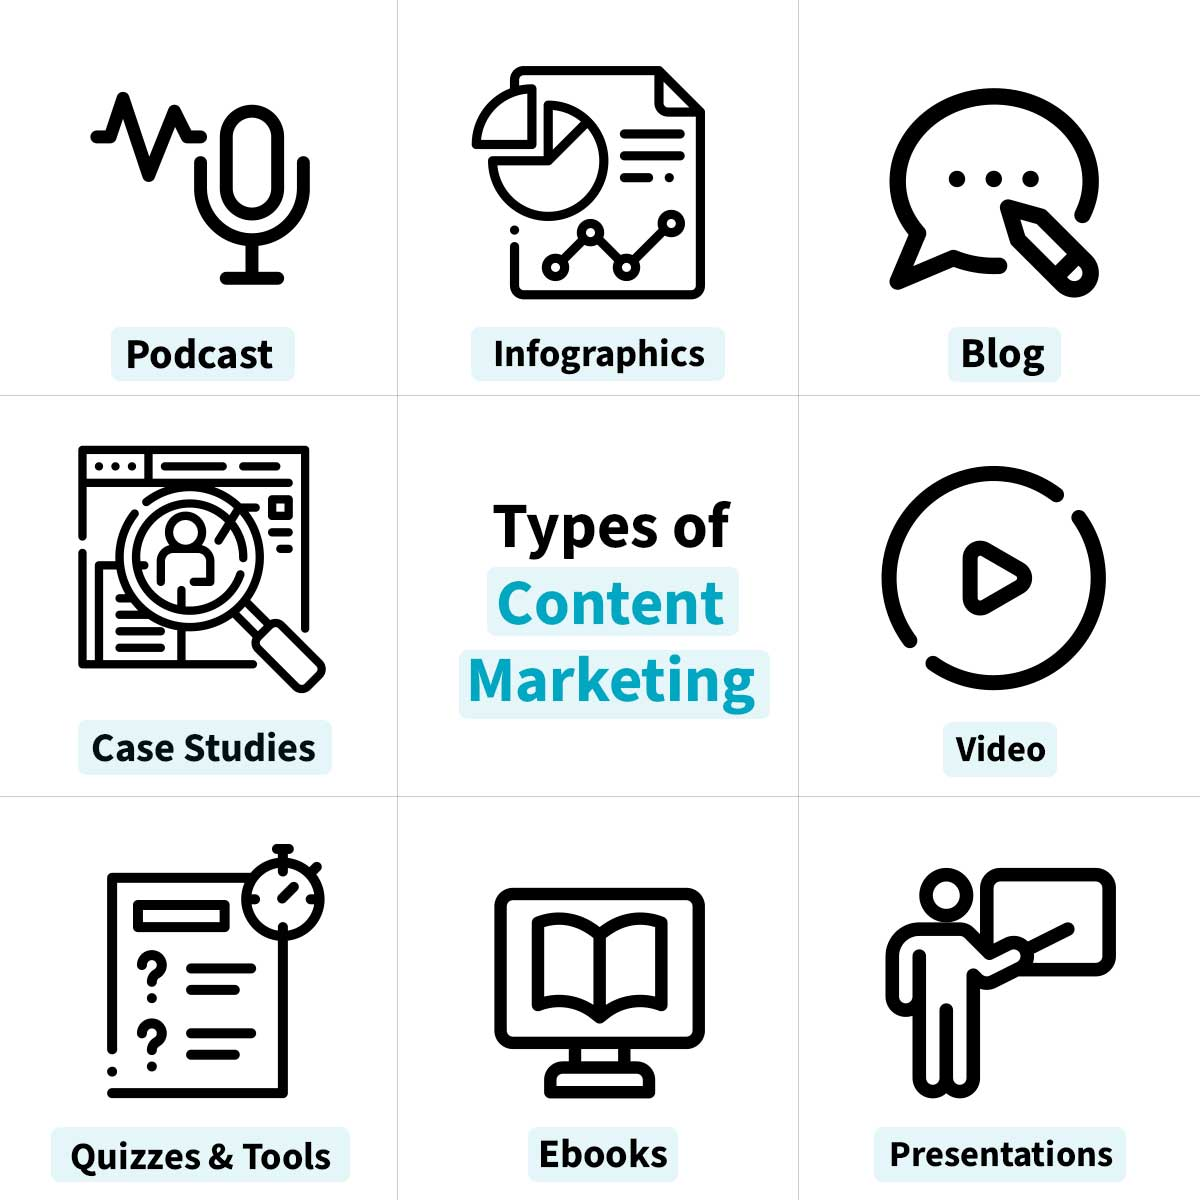 Different Types of Content Marketing including Podcasts, infographics, Case Studies and more